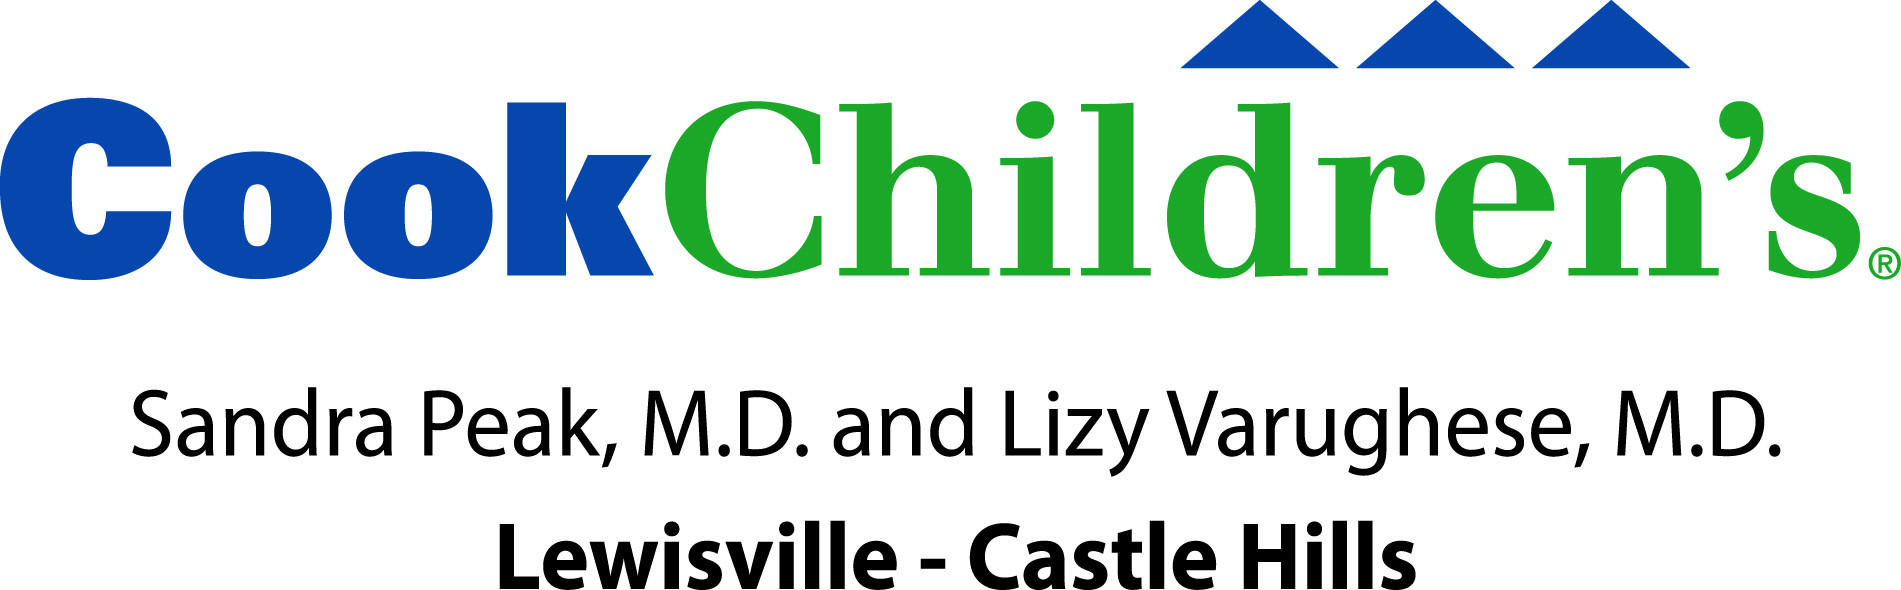 Cook Children's Lizy Varughese; M.D. and Sandra Peak; M.D.